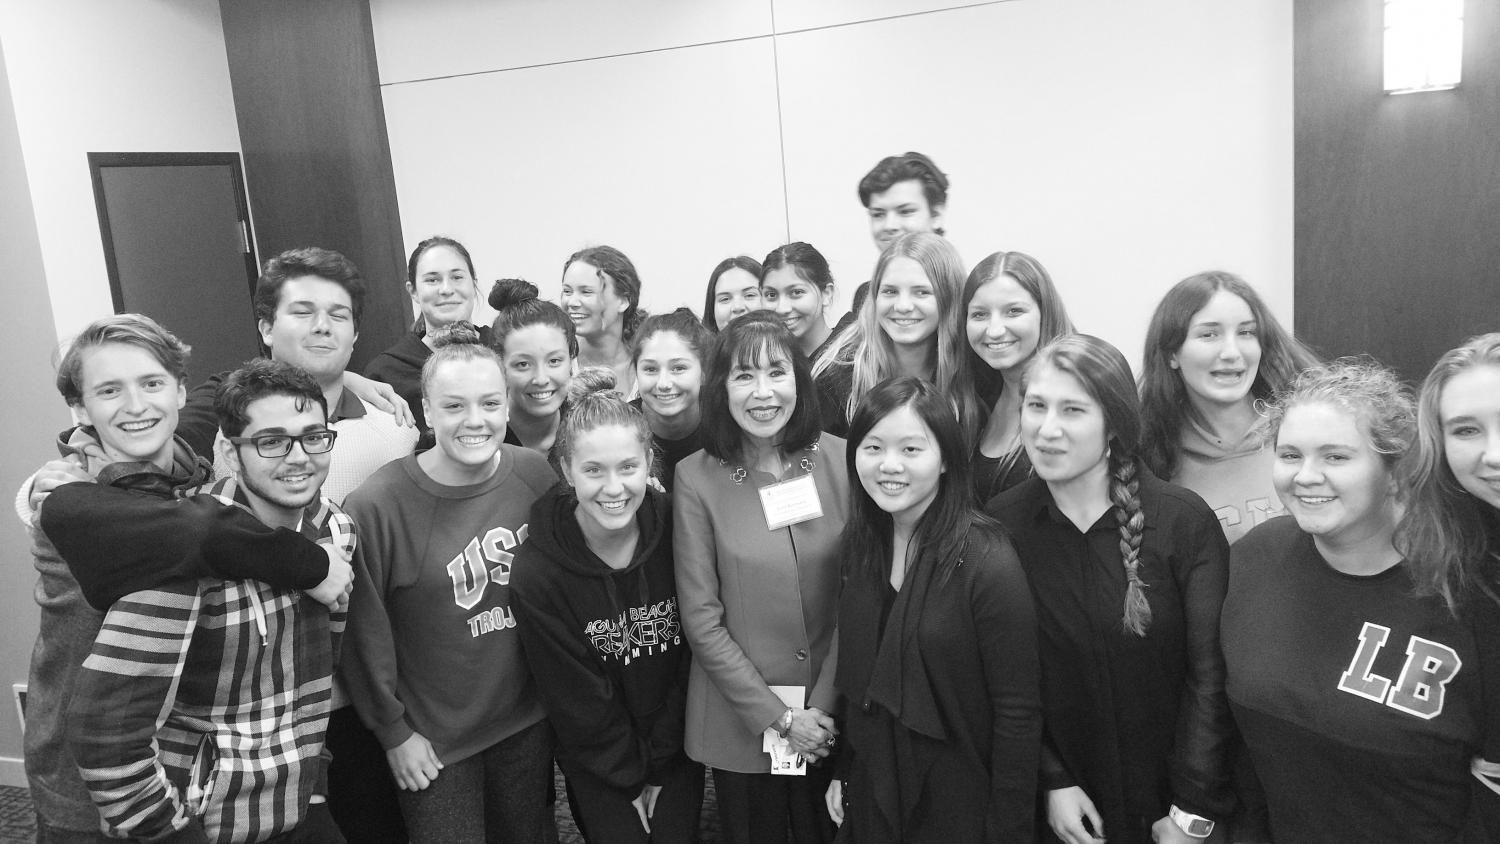 APUSH+students+gather+with+Karen+Korematsu+after+the+presentation.+Students+were+encouraged+to+enter+the+competition+for+personal+experience+and+the+chance+to+learn+more+about+democracy%2C+the+legal+system+and+the+reality+about+Japanese+internment.+